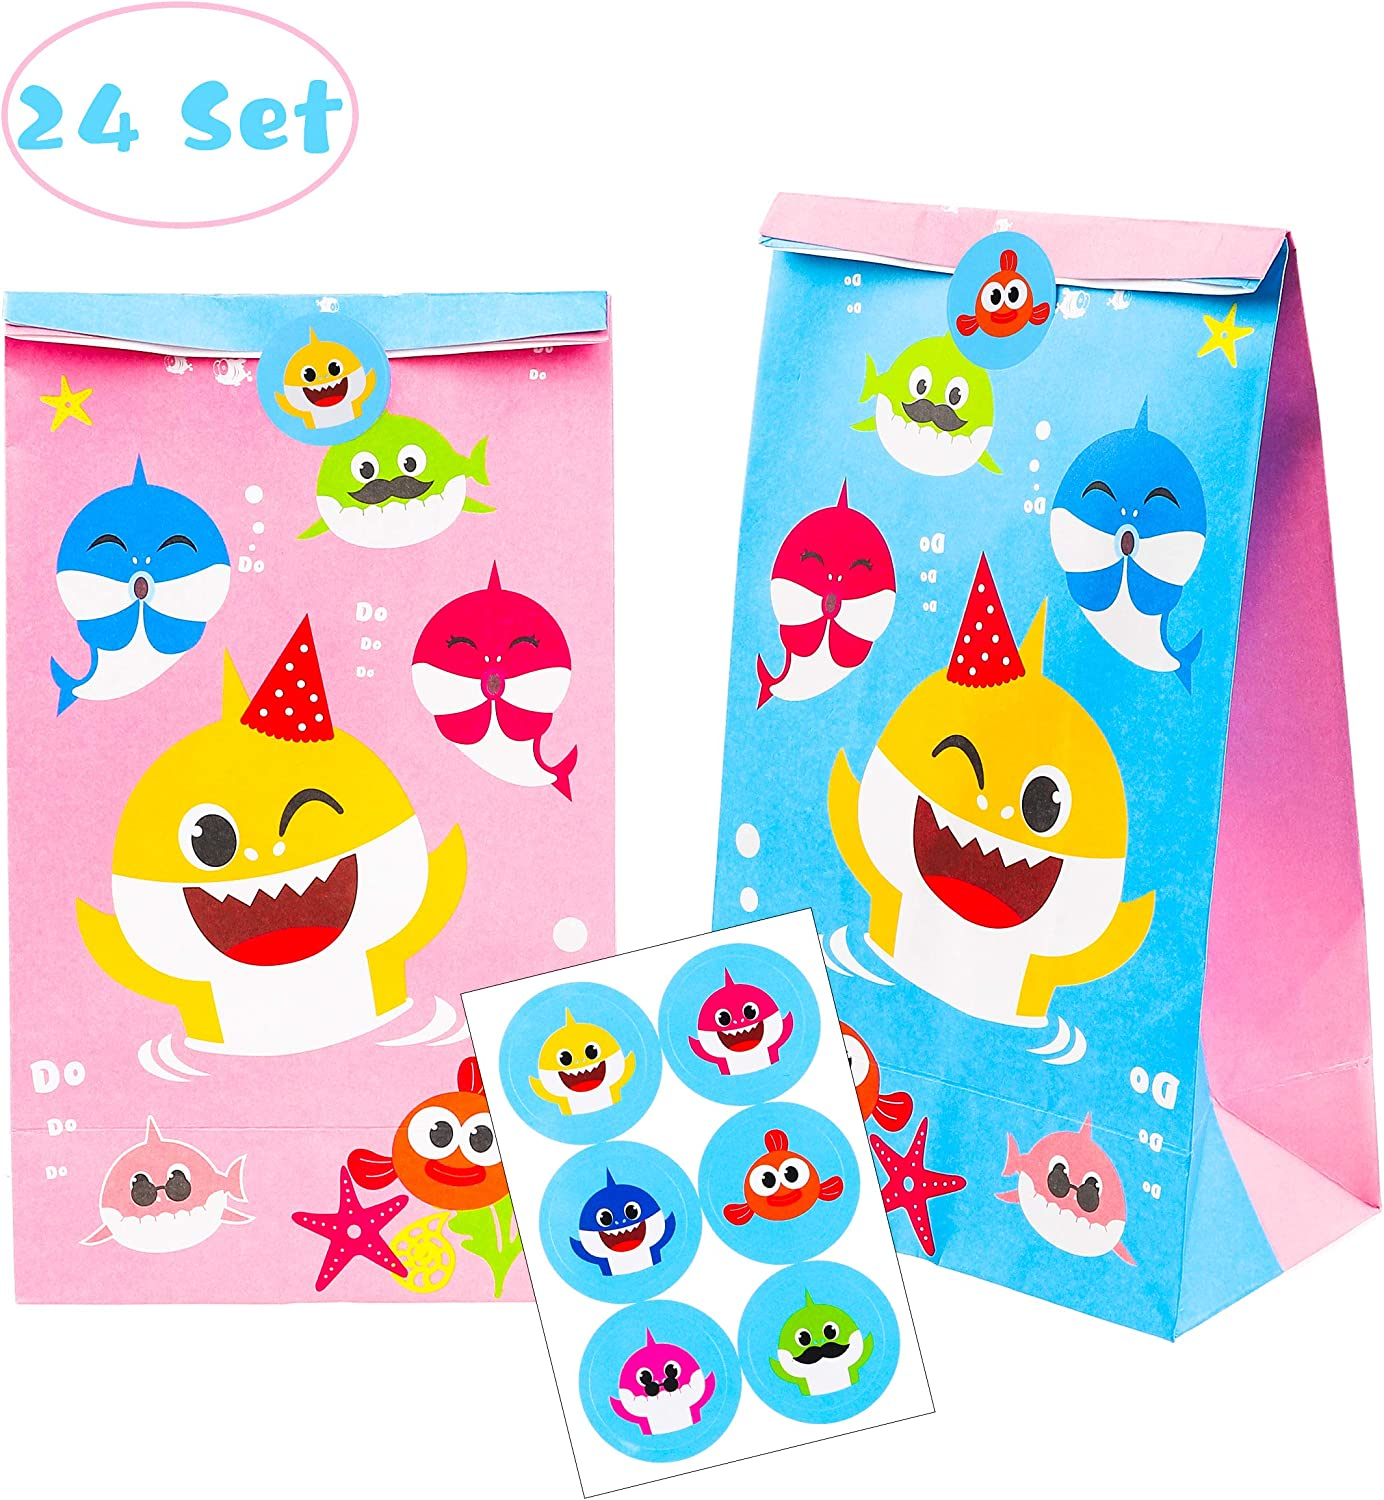 MALLMALL6 Little Shark Candy Treat Bags 24Pcs Birthday Party Shark Family Baby Shower Goodie Bags Candy Favor Bags Shark Themed Party Dessert Paper Bags with Thank You Stickers for Kids